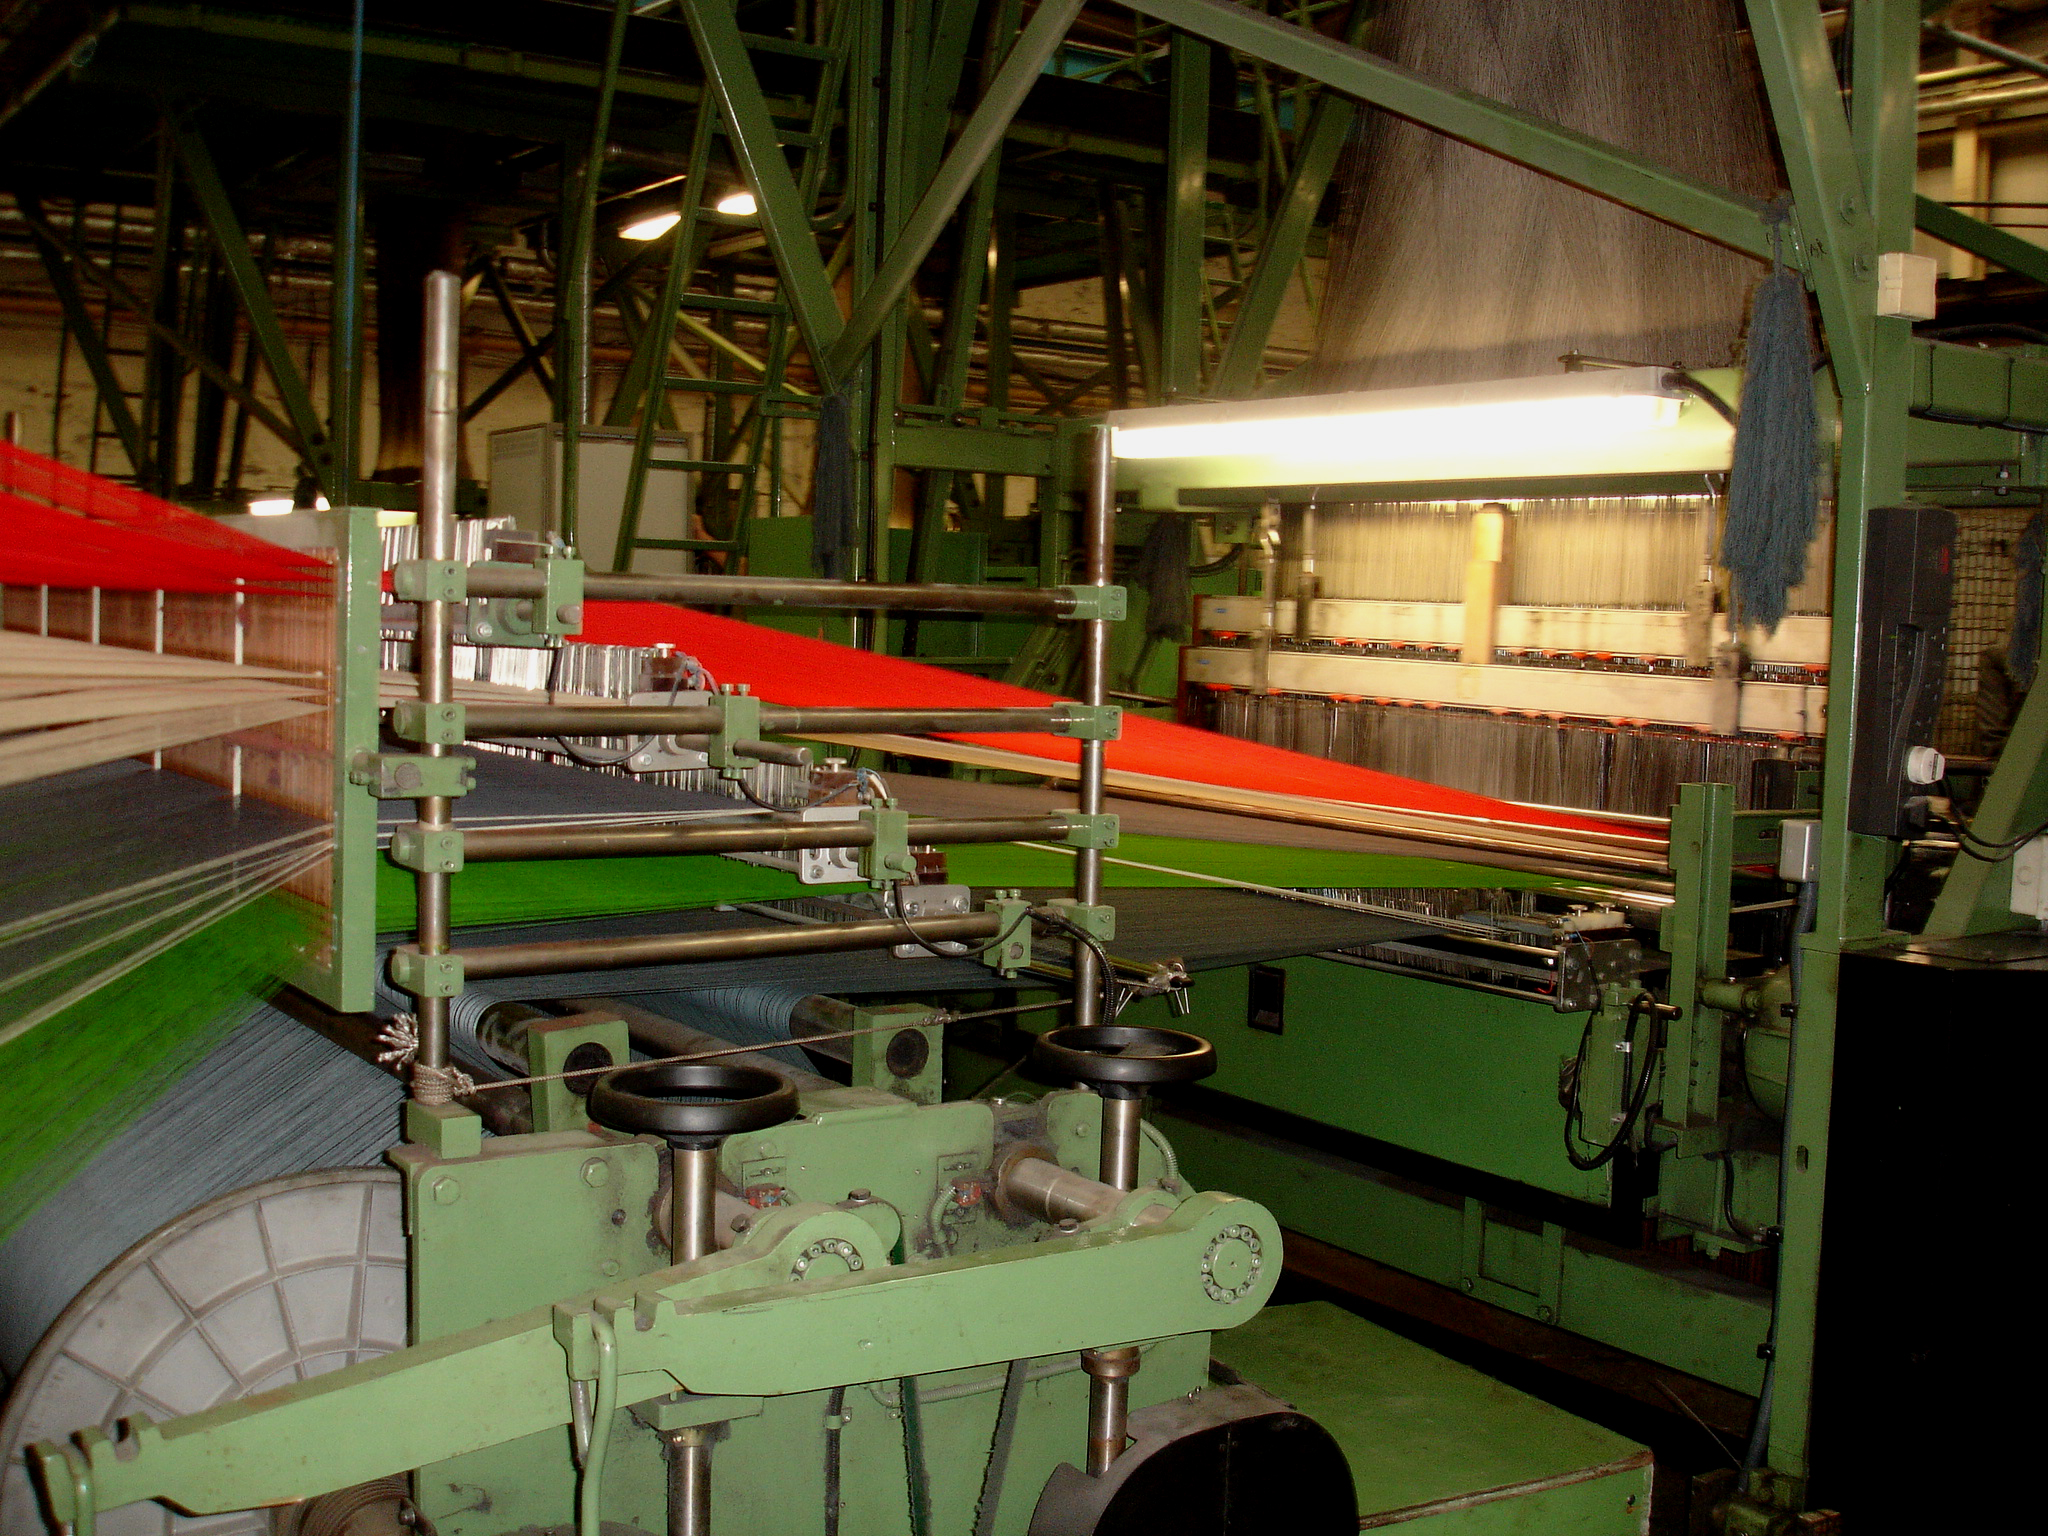 Wallace sewell tram loom the weave shed for London underground moquette